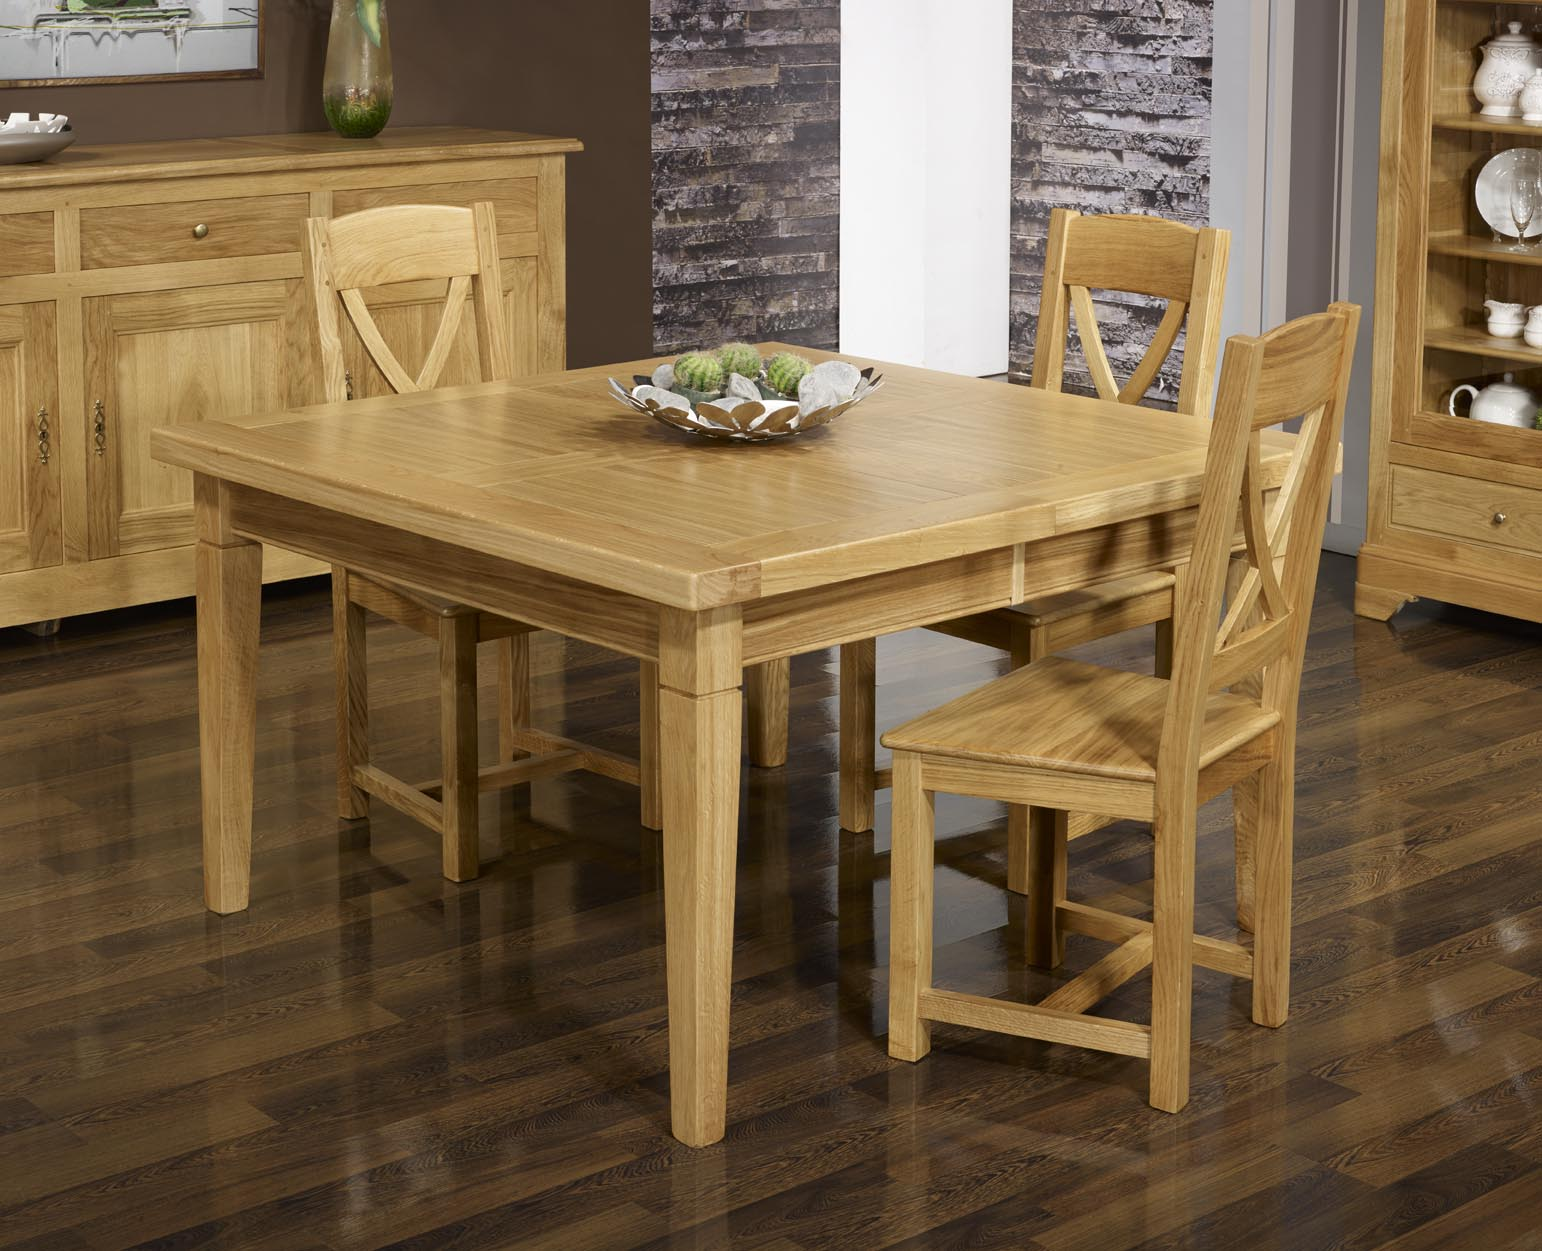 table de campagne 130x130 en chne massif 2 allonges de 40 cm meuble en chne massif